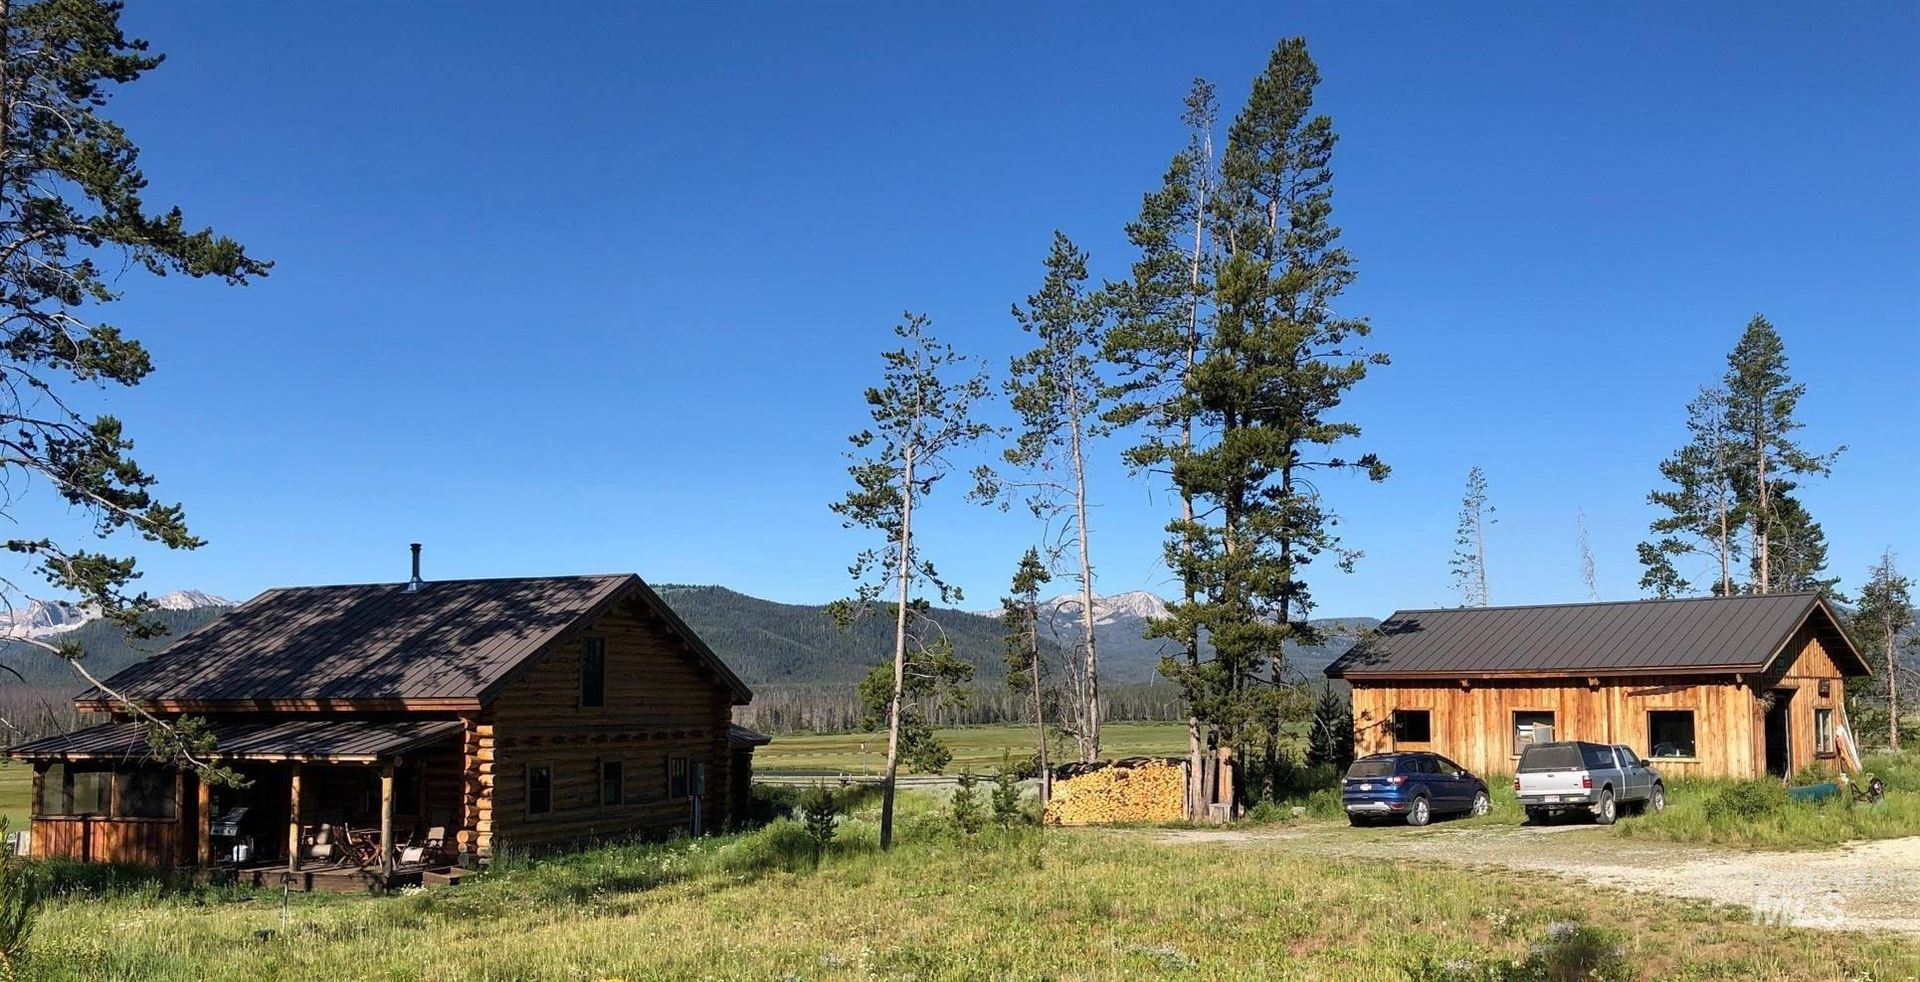 Photo of 2383 Cow Camp Rd, Stanley, ID 83278 (MLS # 98811575)